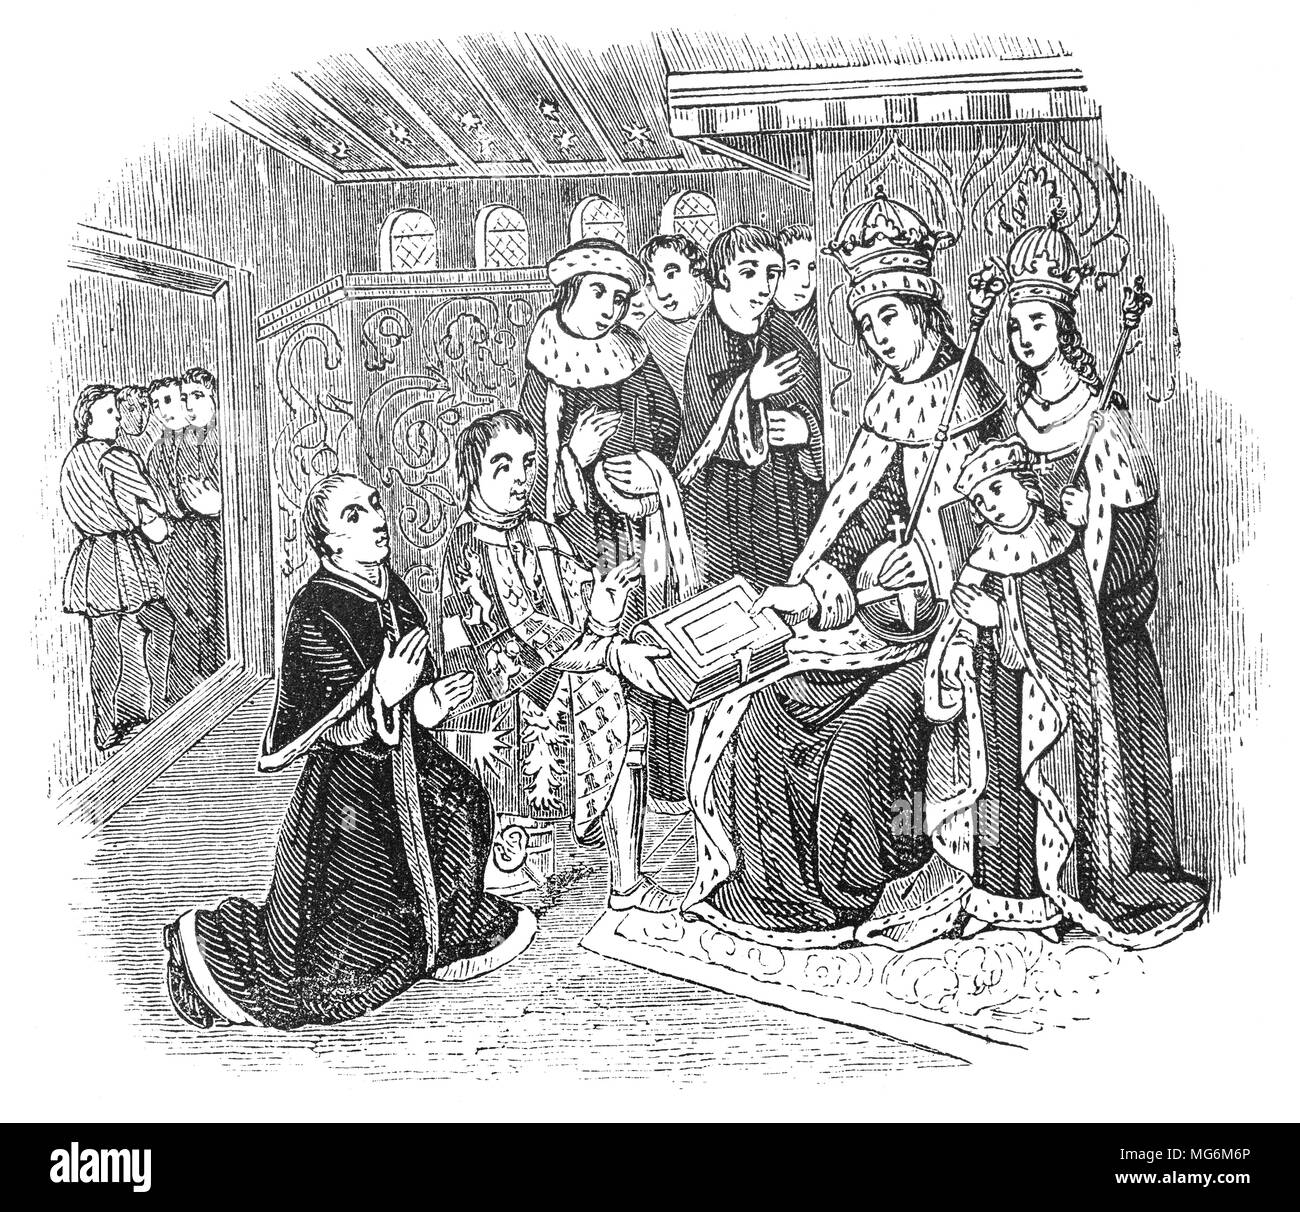 Richard Woodville, 1st Earl Rivers (1405 – 1469) an English nobleman, and the father of Queen consort Elizabeth Woodville, presenting  William Caxton (1422 – 1491) to King Edward IV. Caxton  was the English merchant,  writer and printer thought to be the first person to introduce a printing press into England, in 1476.  The first book known to have been produced there was an edition of Chaucer's The Canterbury Tales. He printed perhaps the earliest verses of the Bible to be printed in English, as well as chivalric romances, classical works and English and Roman histories. - Stock Image